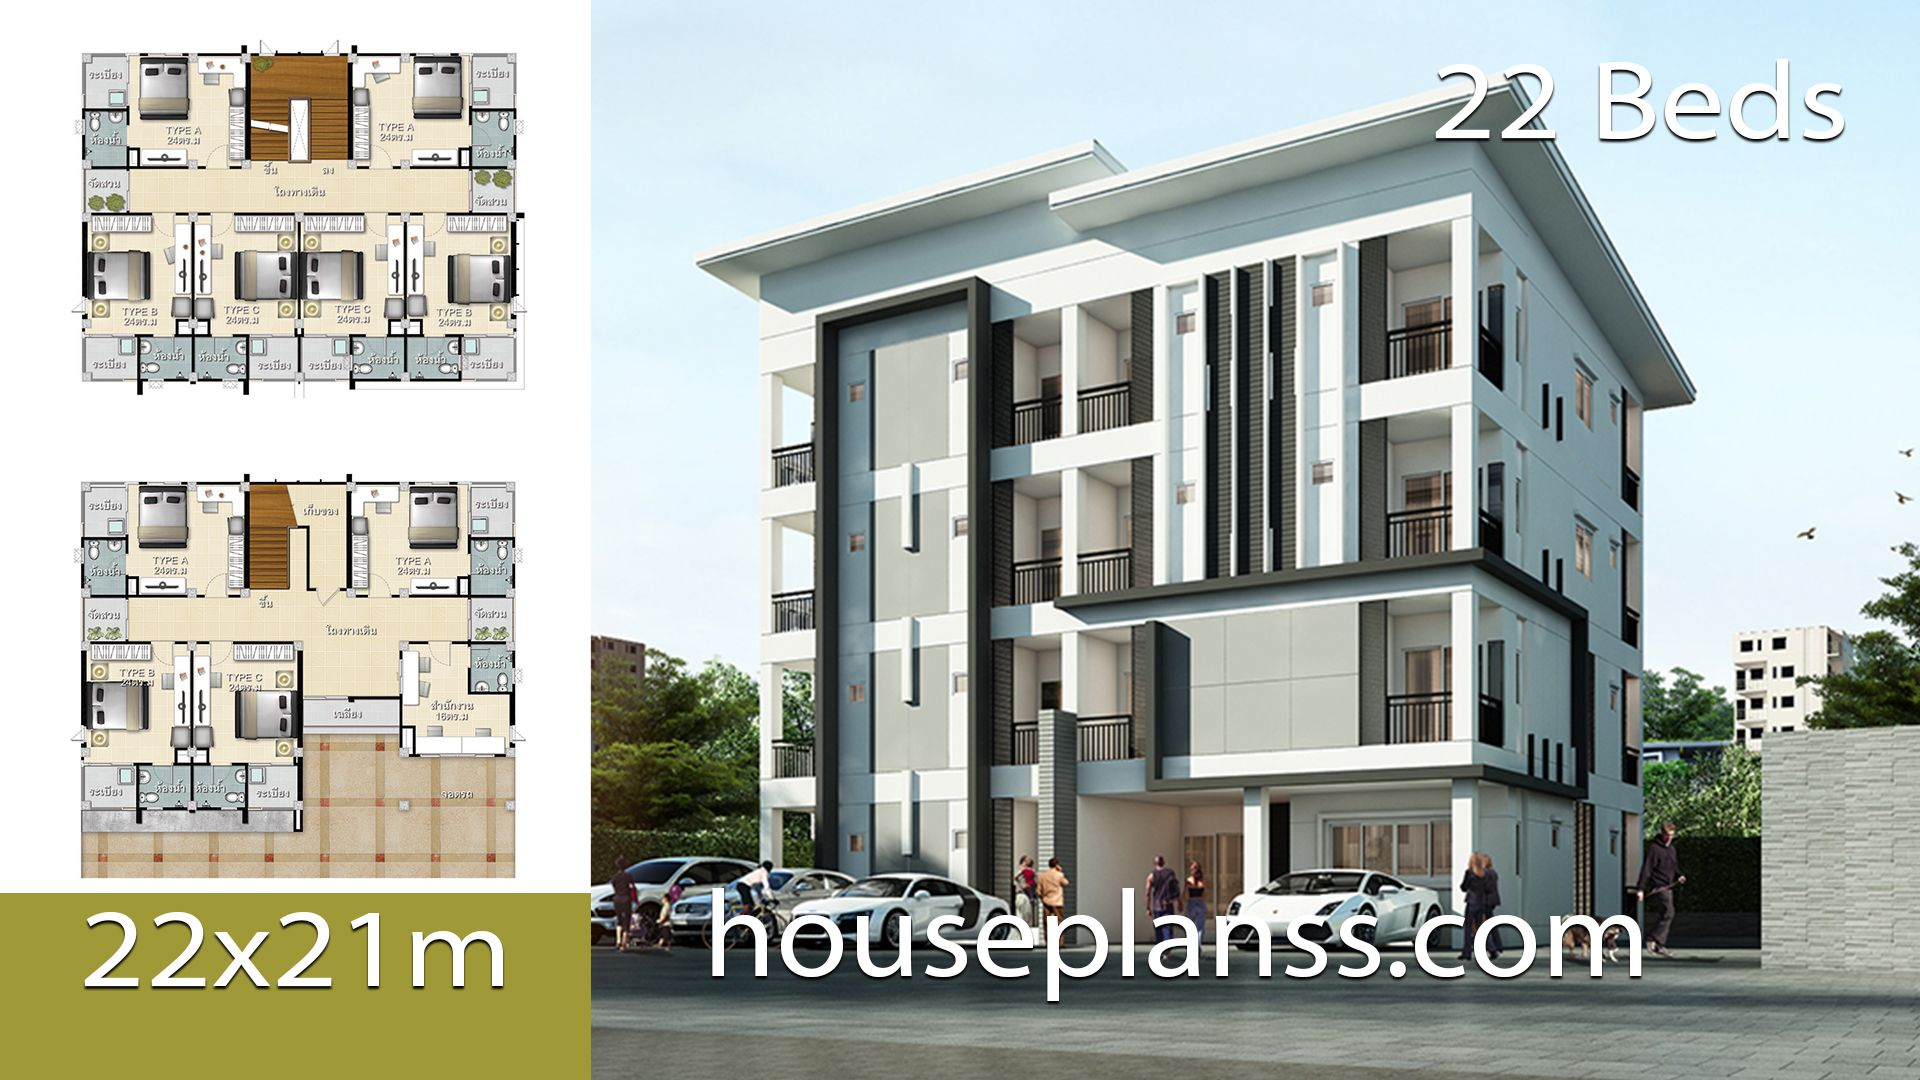 Apartment Design Plans 22x21 With 22 Bedrooms Apartment Design House Plans Apartment Plans